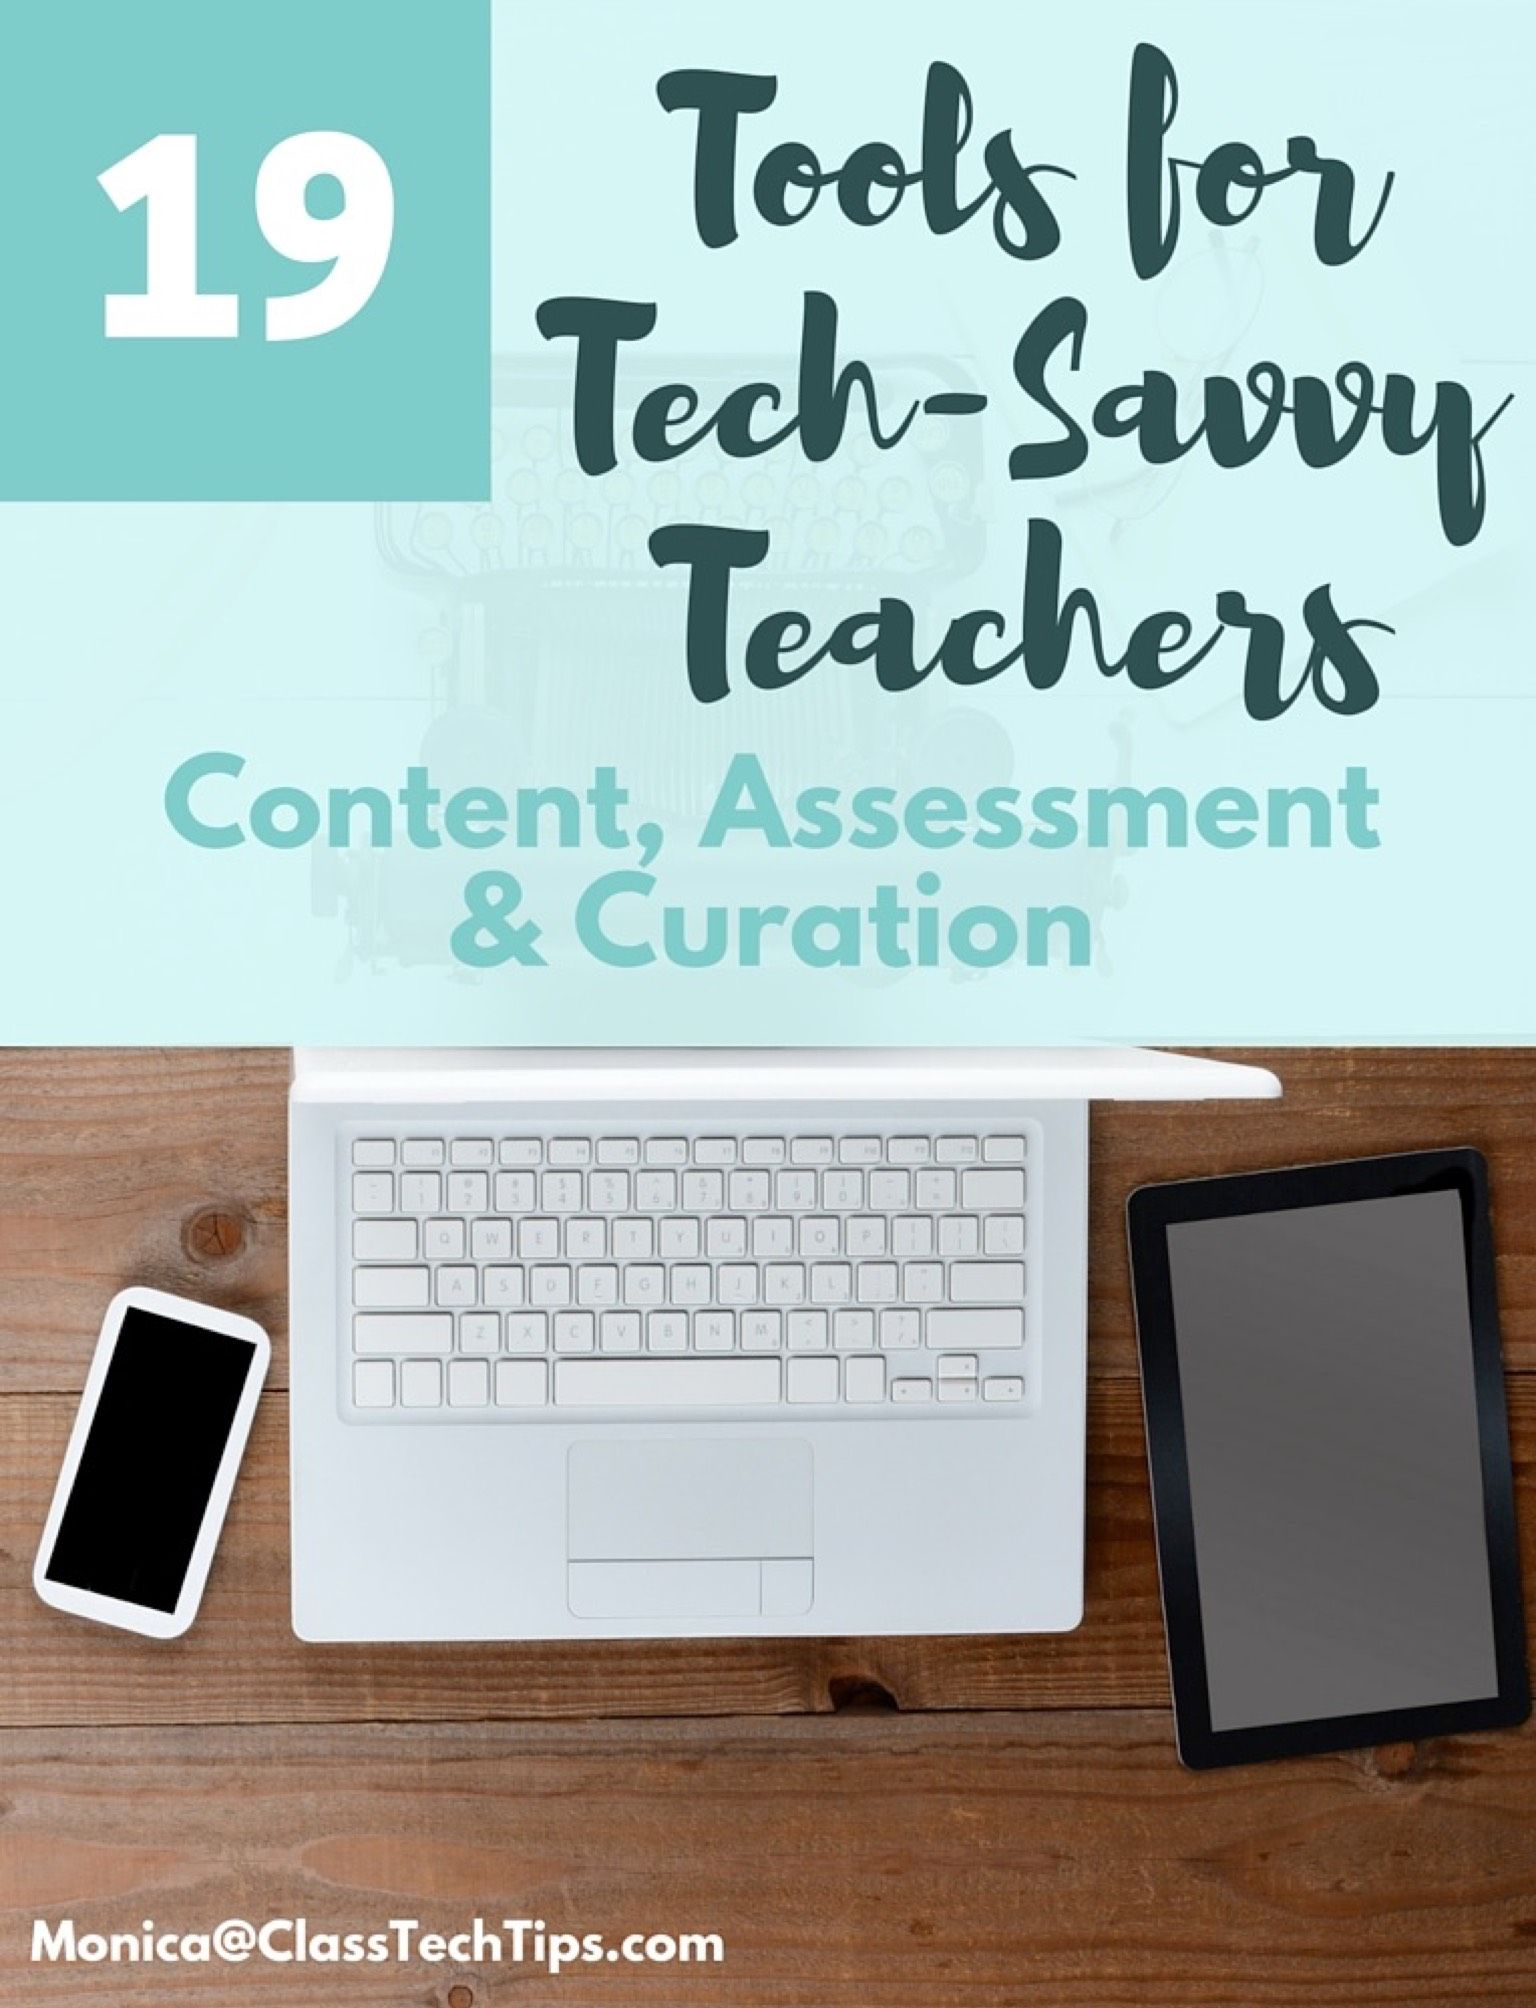 Lo Ng For Education Technology Ideas This Free Ebook Has Tips For Using Technology In Your Lesson Plans Technology In The Cl Room And My Favorite